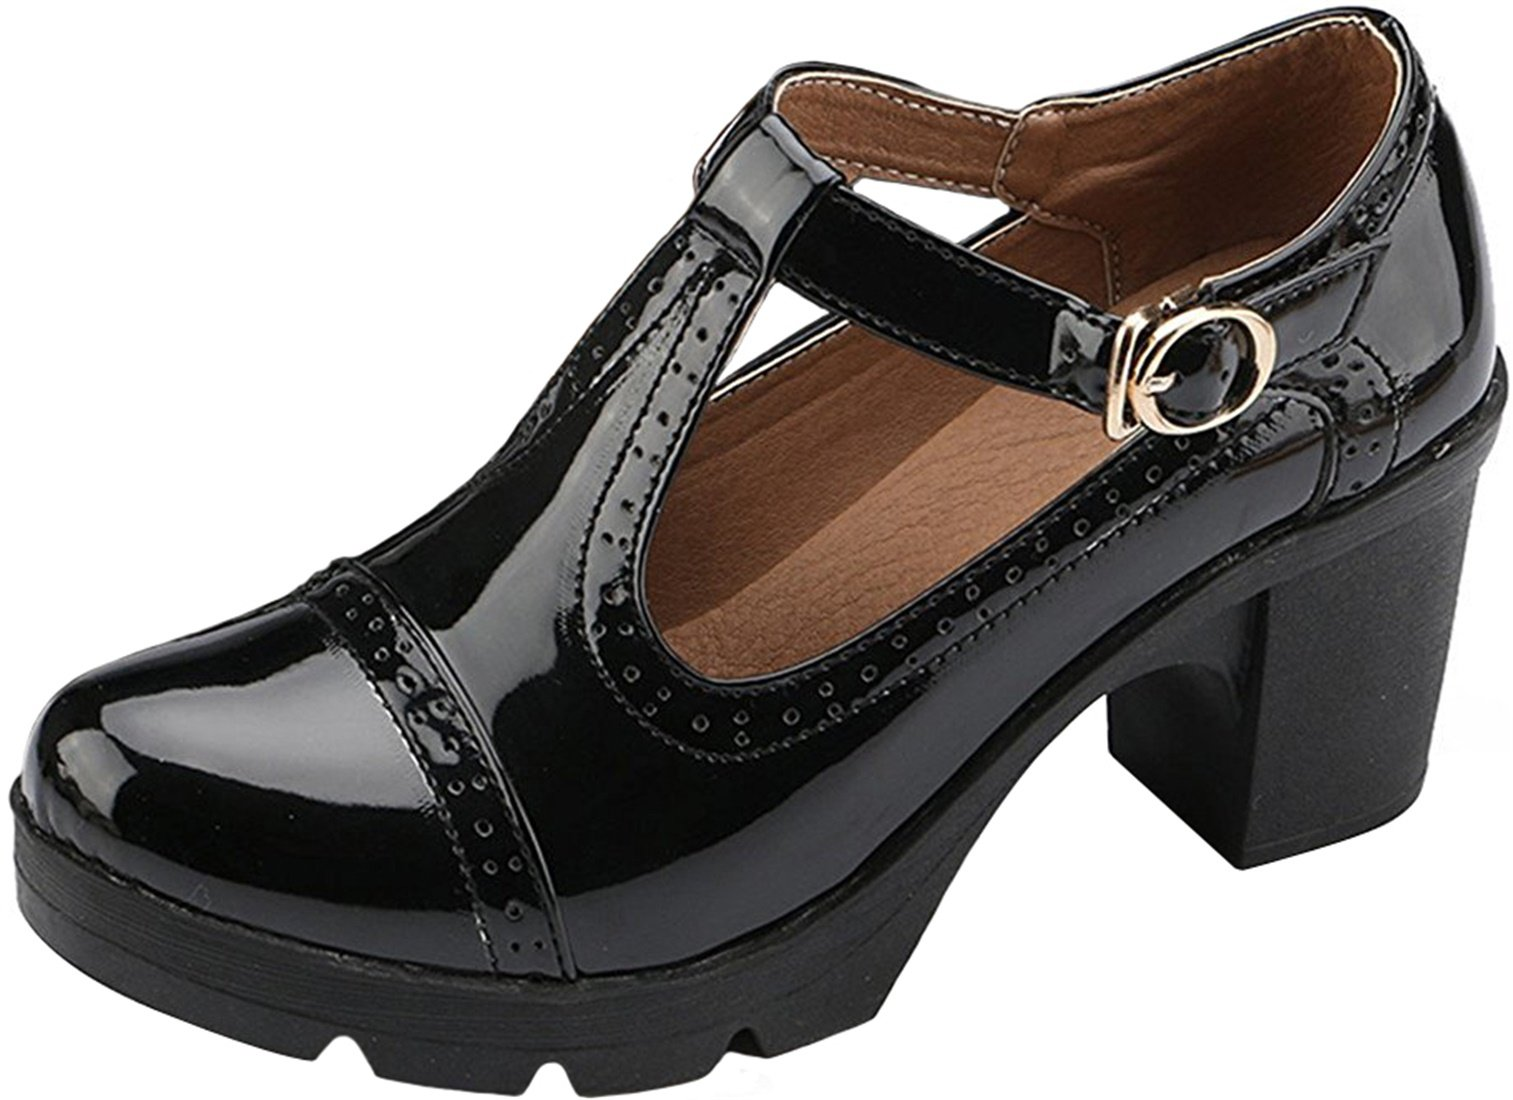 PPXID Women's British Style T-Bar Platform Heeled Oxford Shoes Work Shoes-Black 8.5 US Size